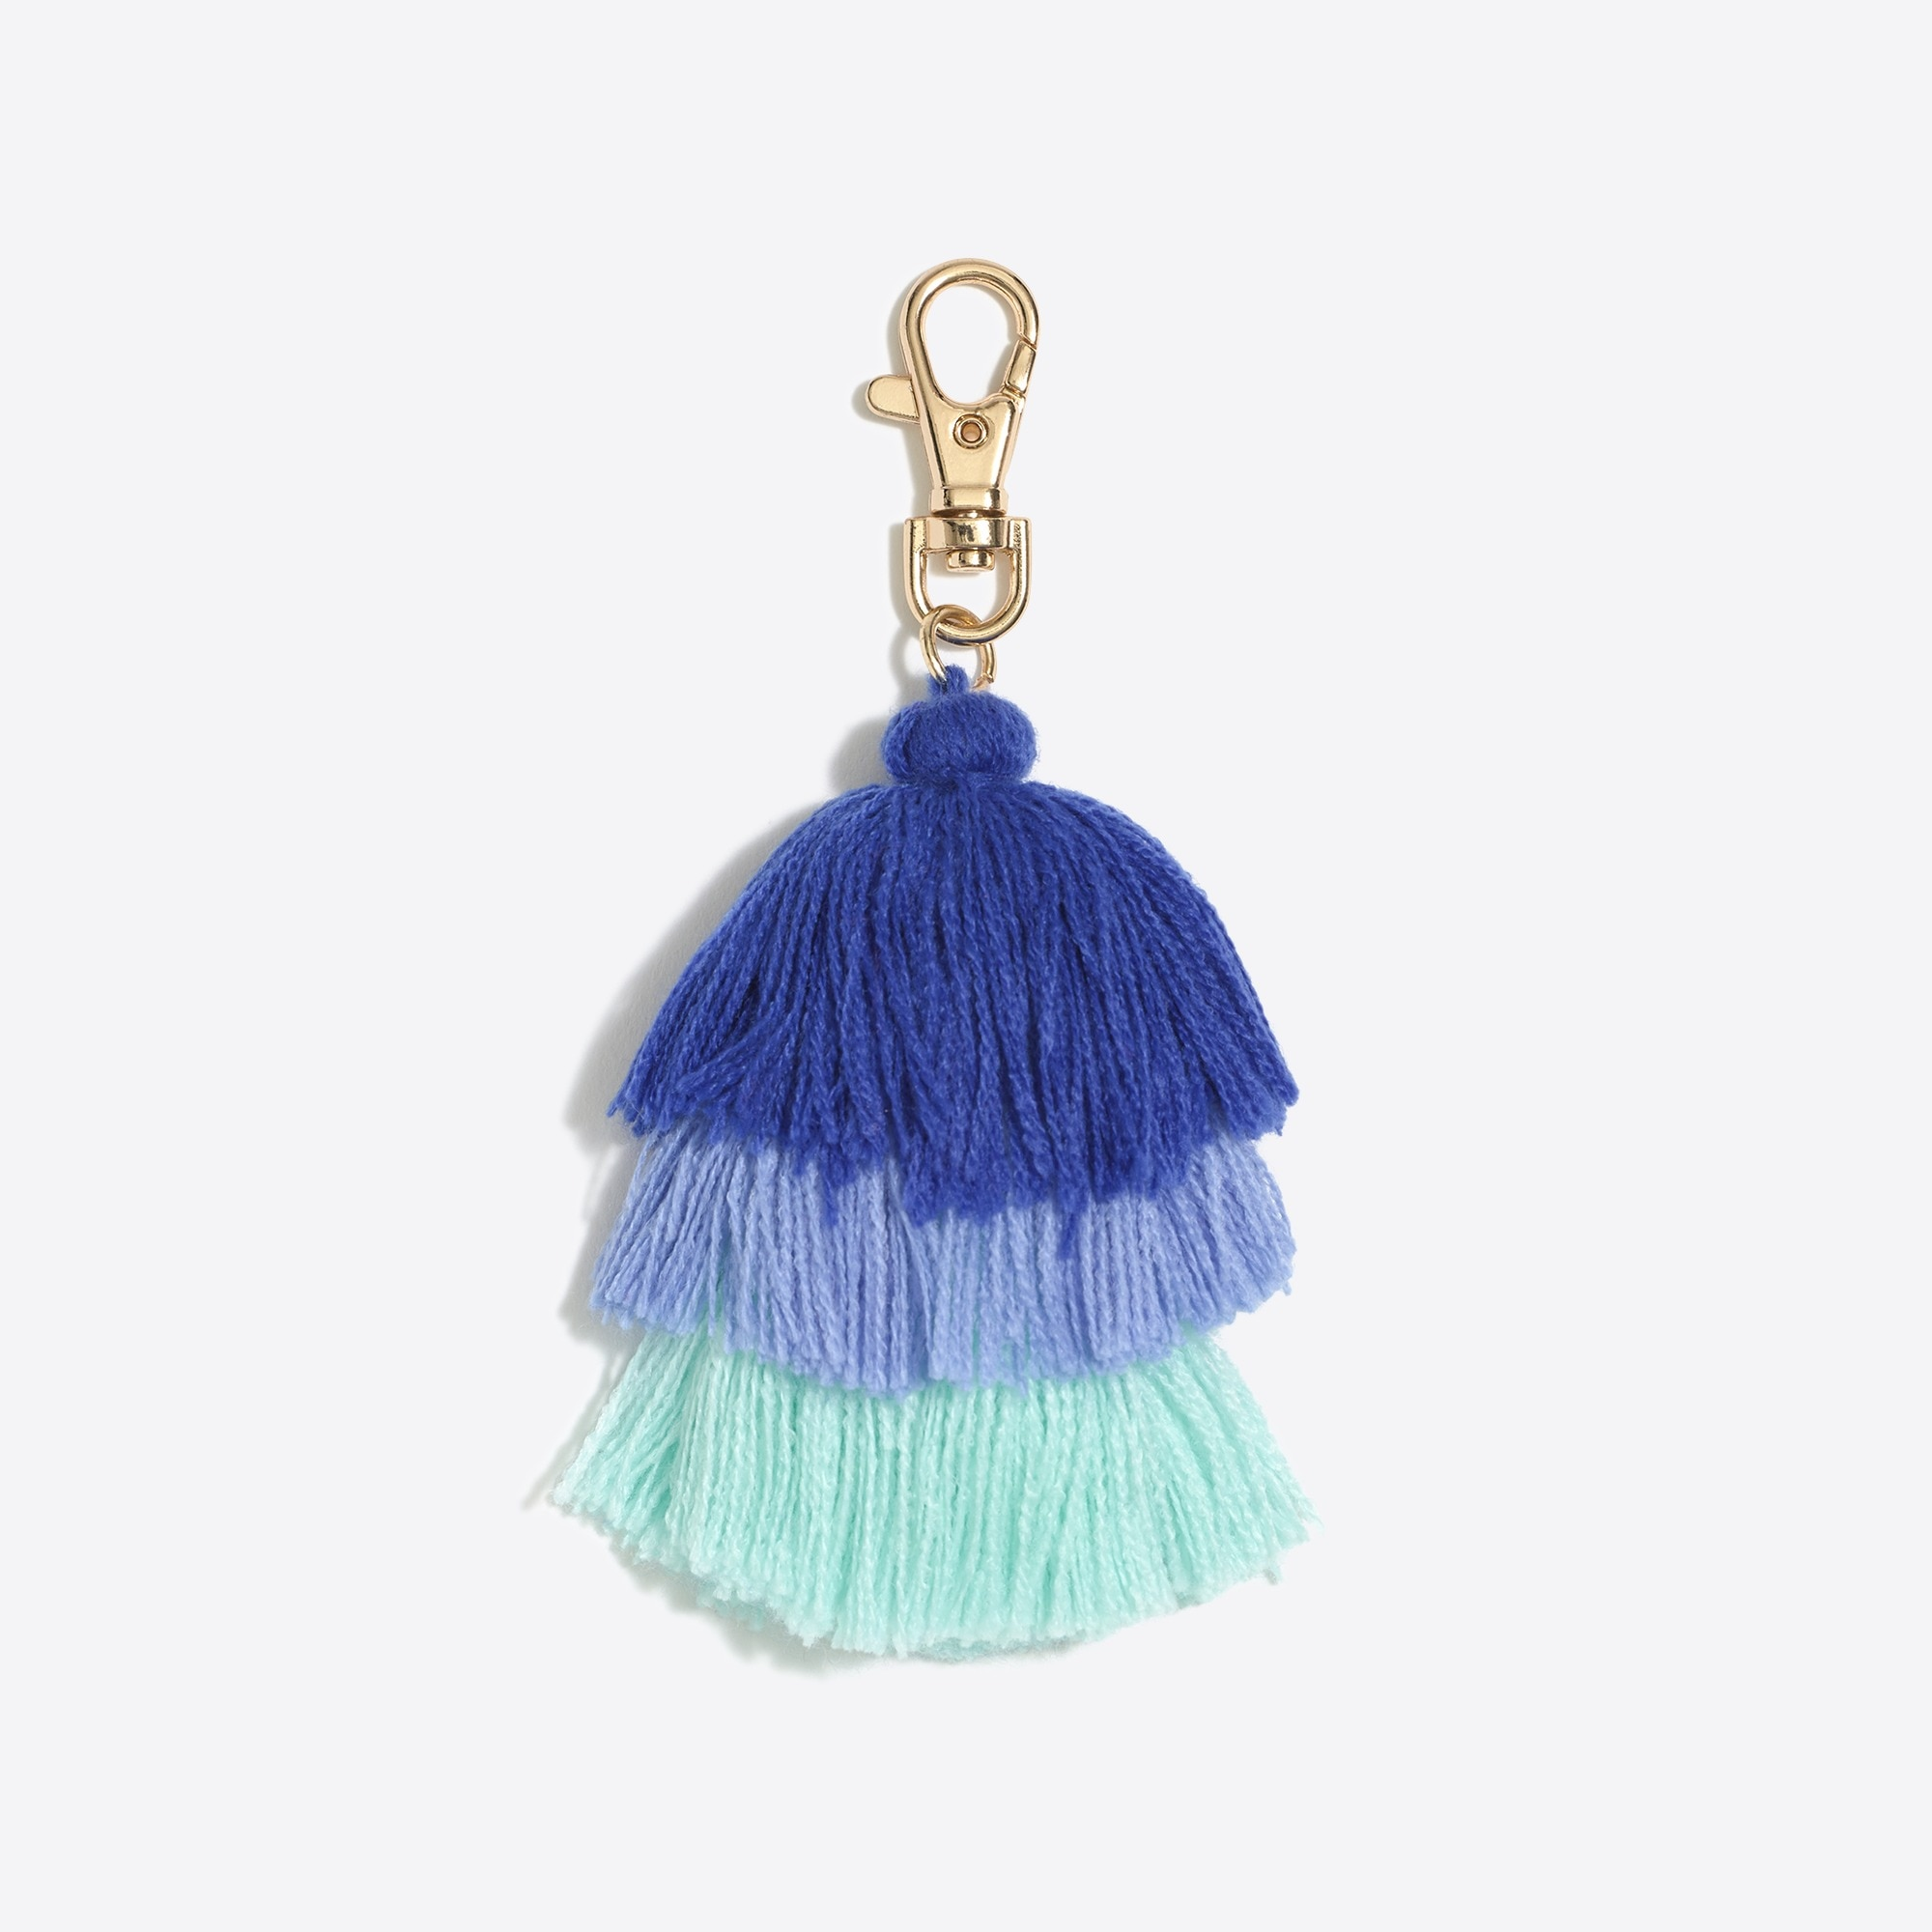 Layered tassel key fob factorywomen accessories c